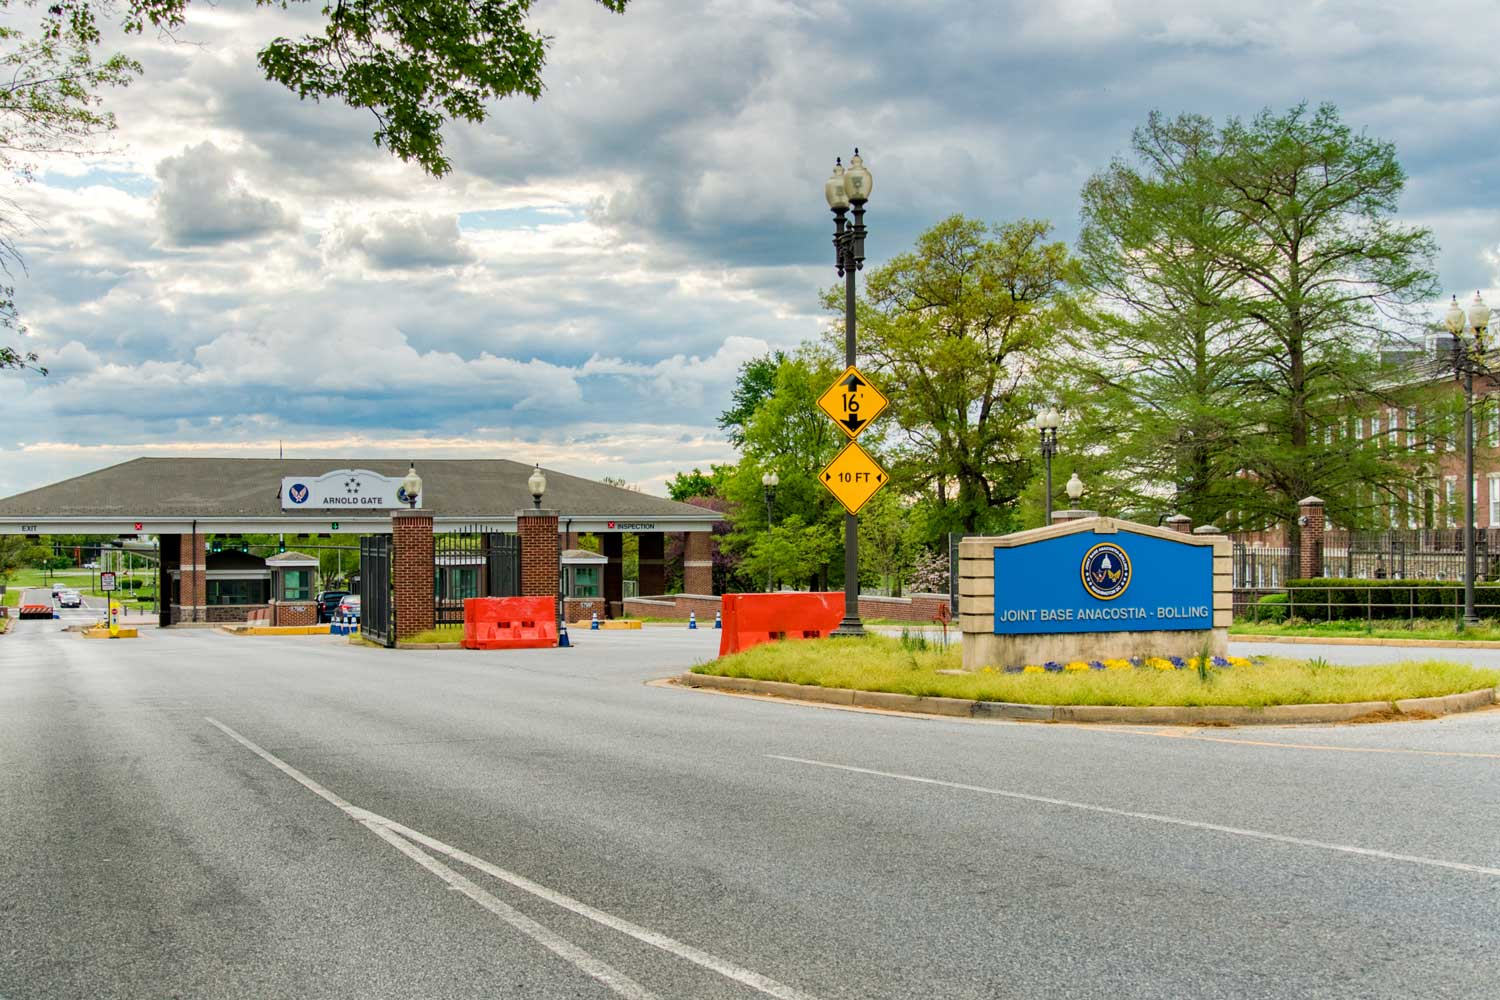 Joint Base Anacostia-Bolling is 10 minutes from Top of the Hill Apartments